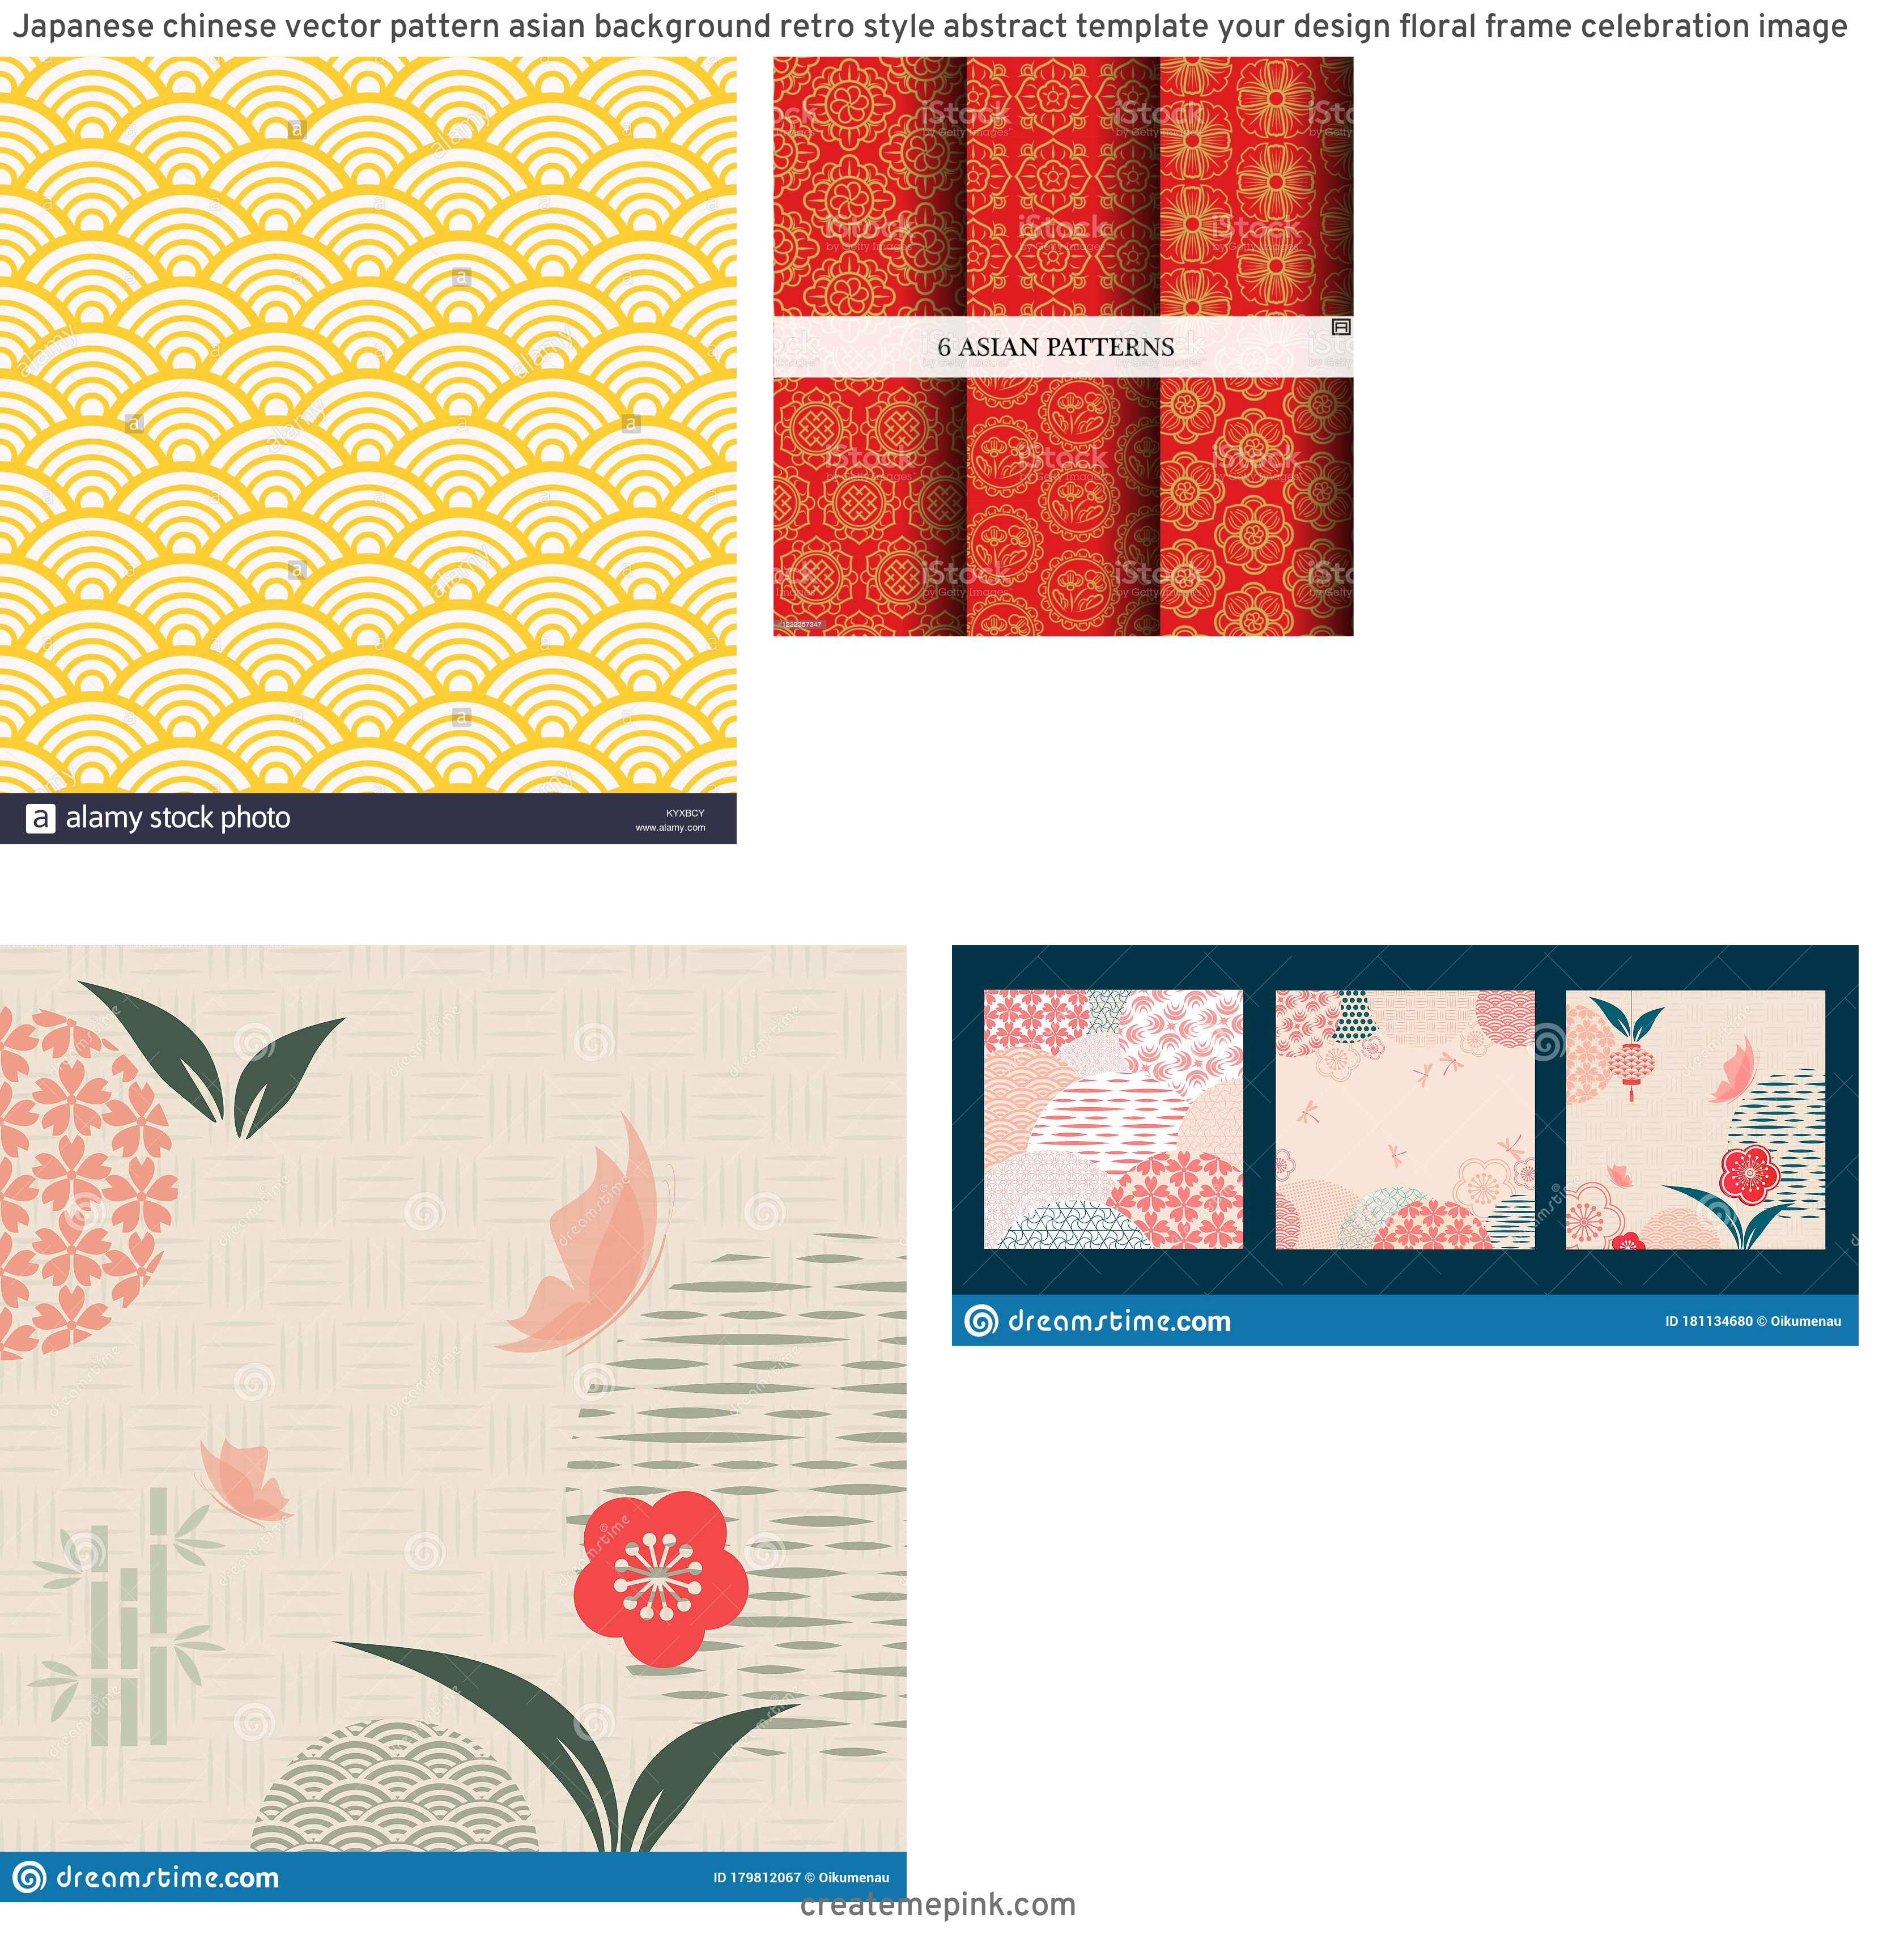 Asian Background Vector: Japanese Chinese Vector Pattern Asian Background Retro Style Abstract Template Your Design Floral Frame Celebration Image